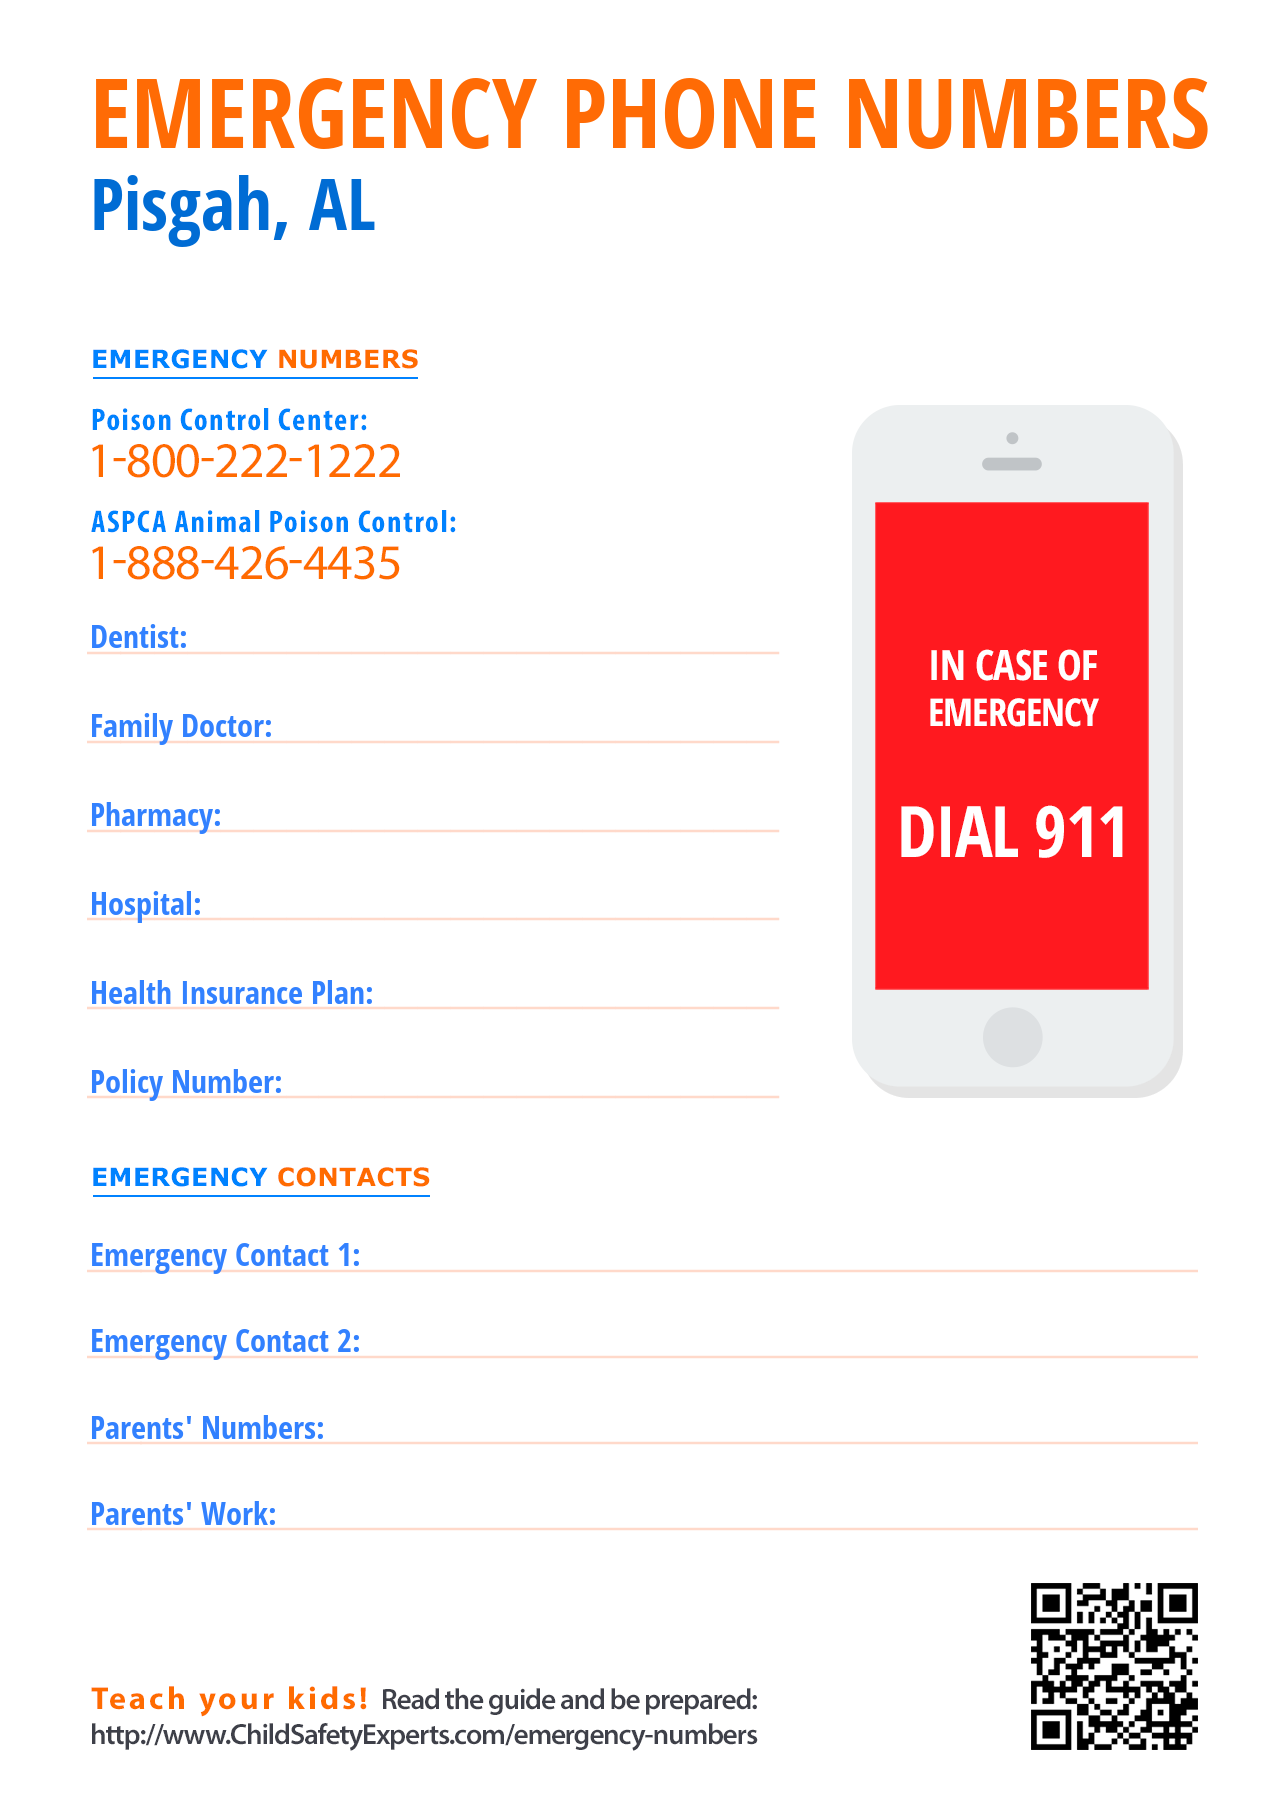 Important emergency phone numbers in Pisgah, Alabama